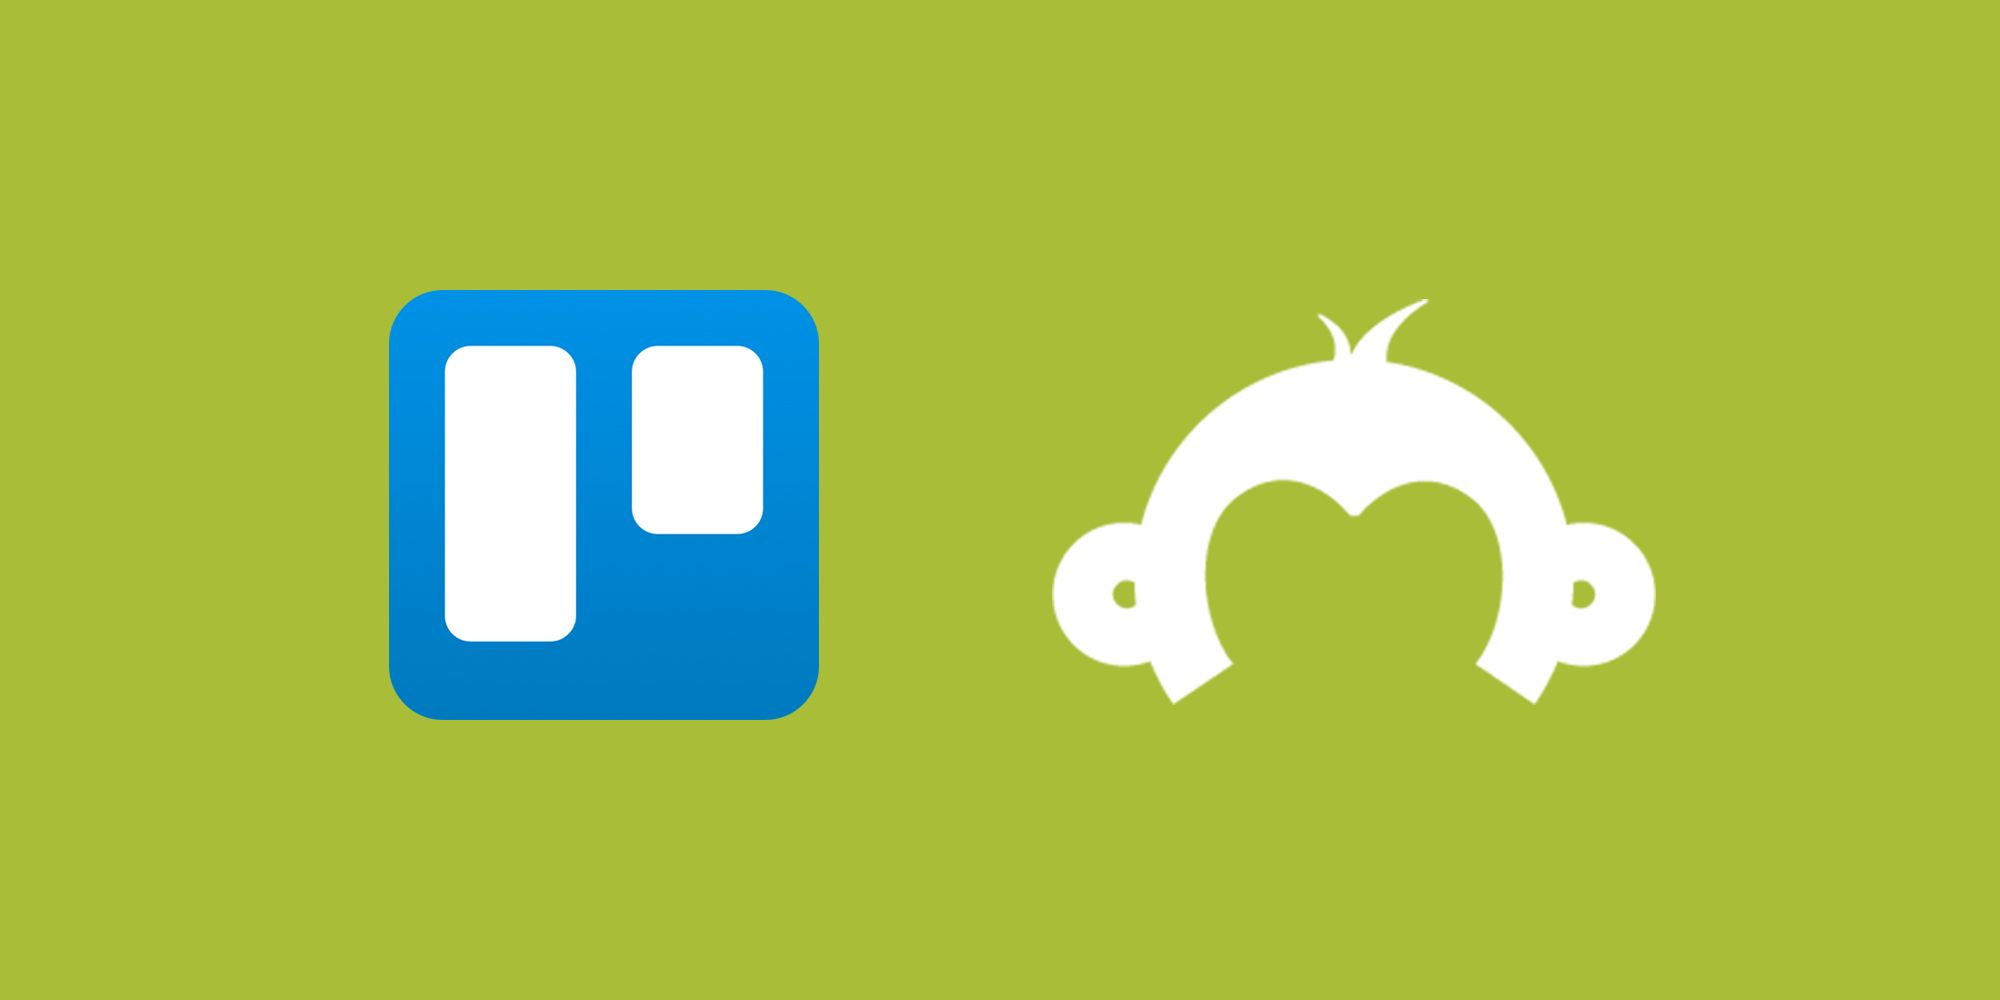 Now you can attach SurveyMonkey right to Trello cards.